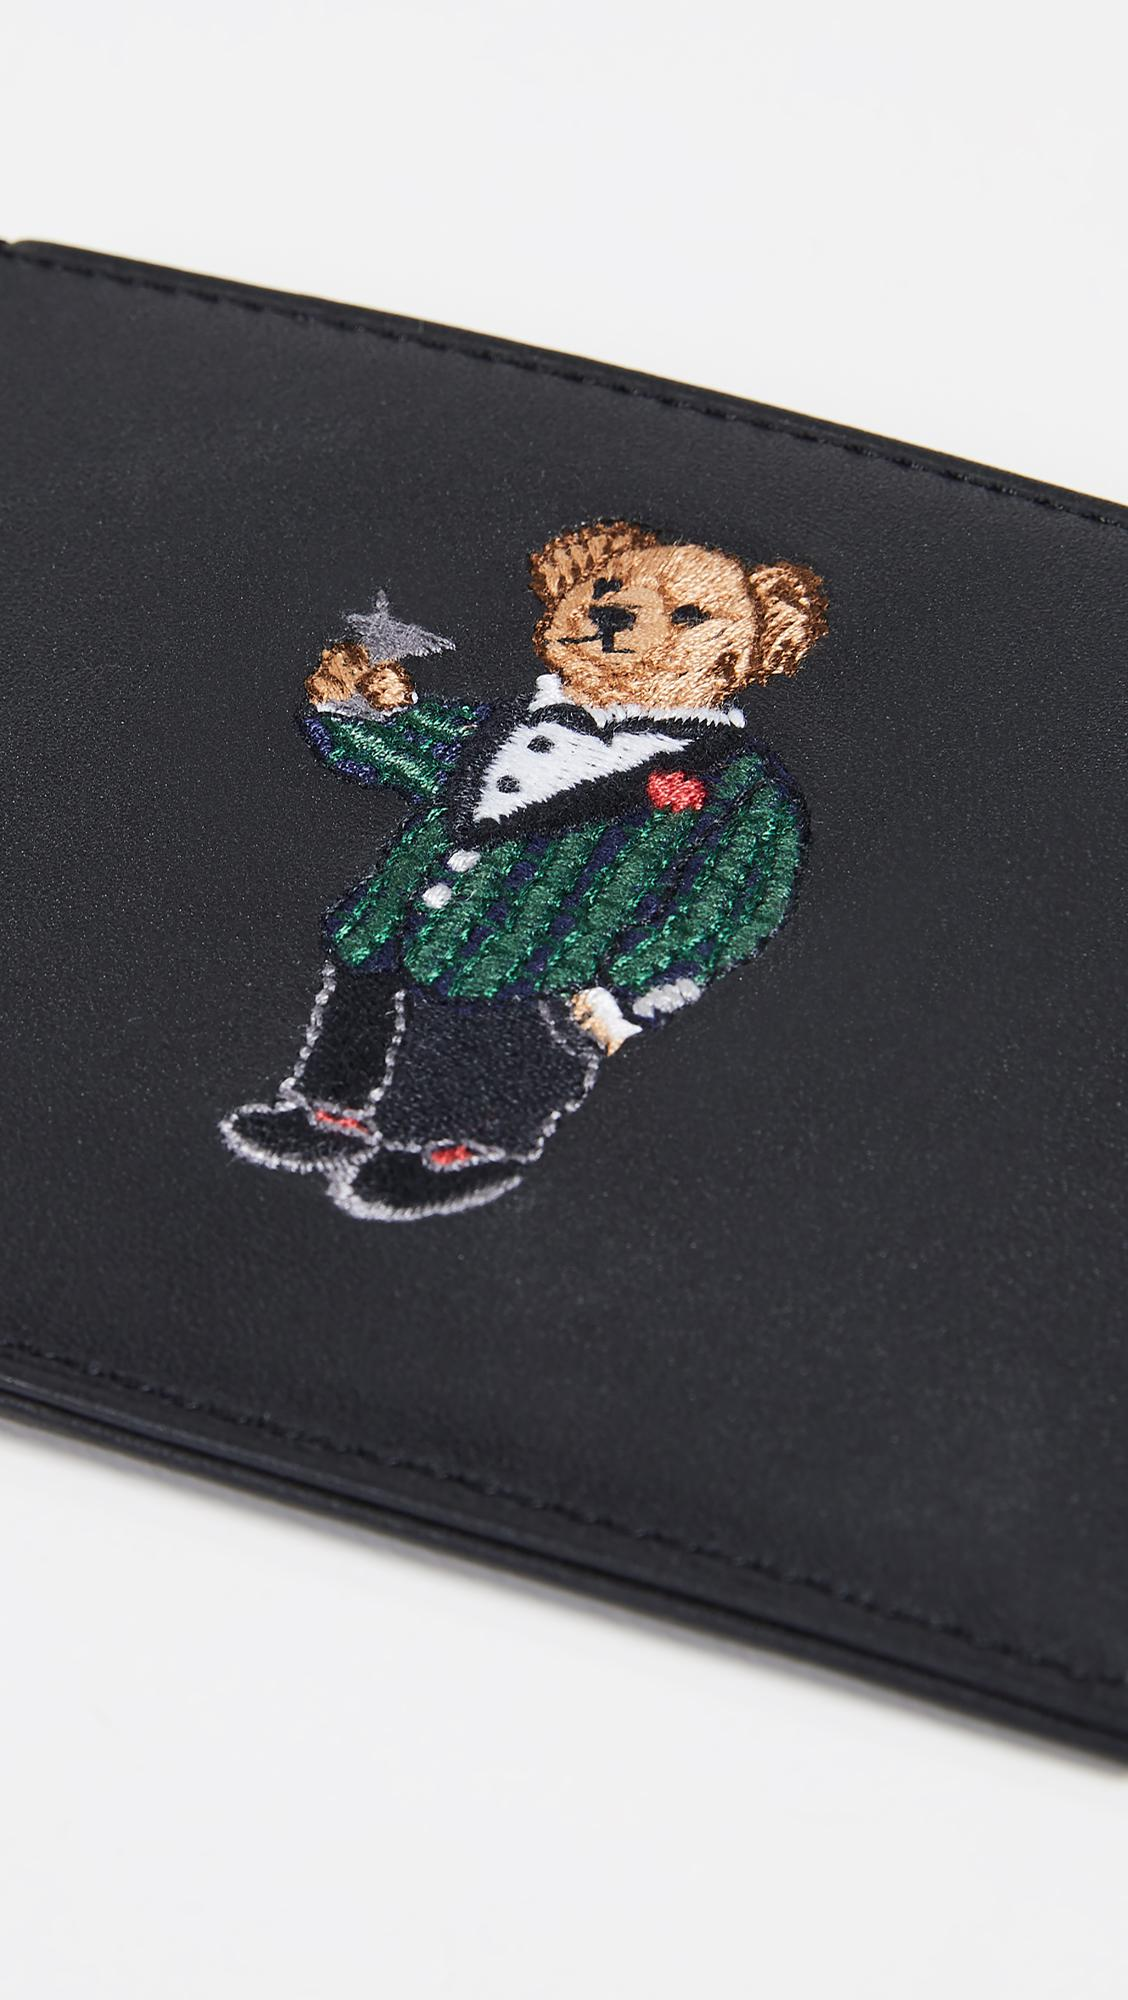 Polo Ralph Lauren Polo Bear Leather Card Case in Black for Men - Lyst 2802572505e5a